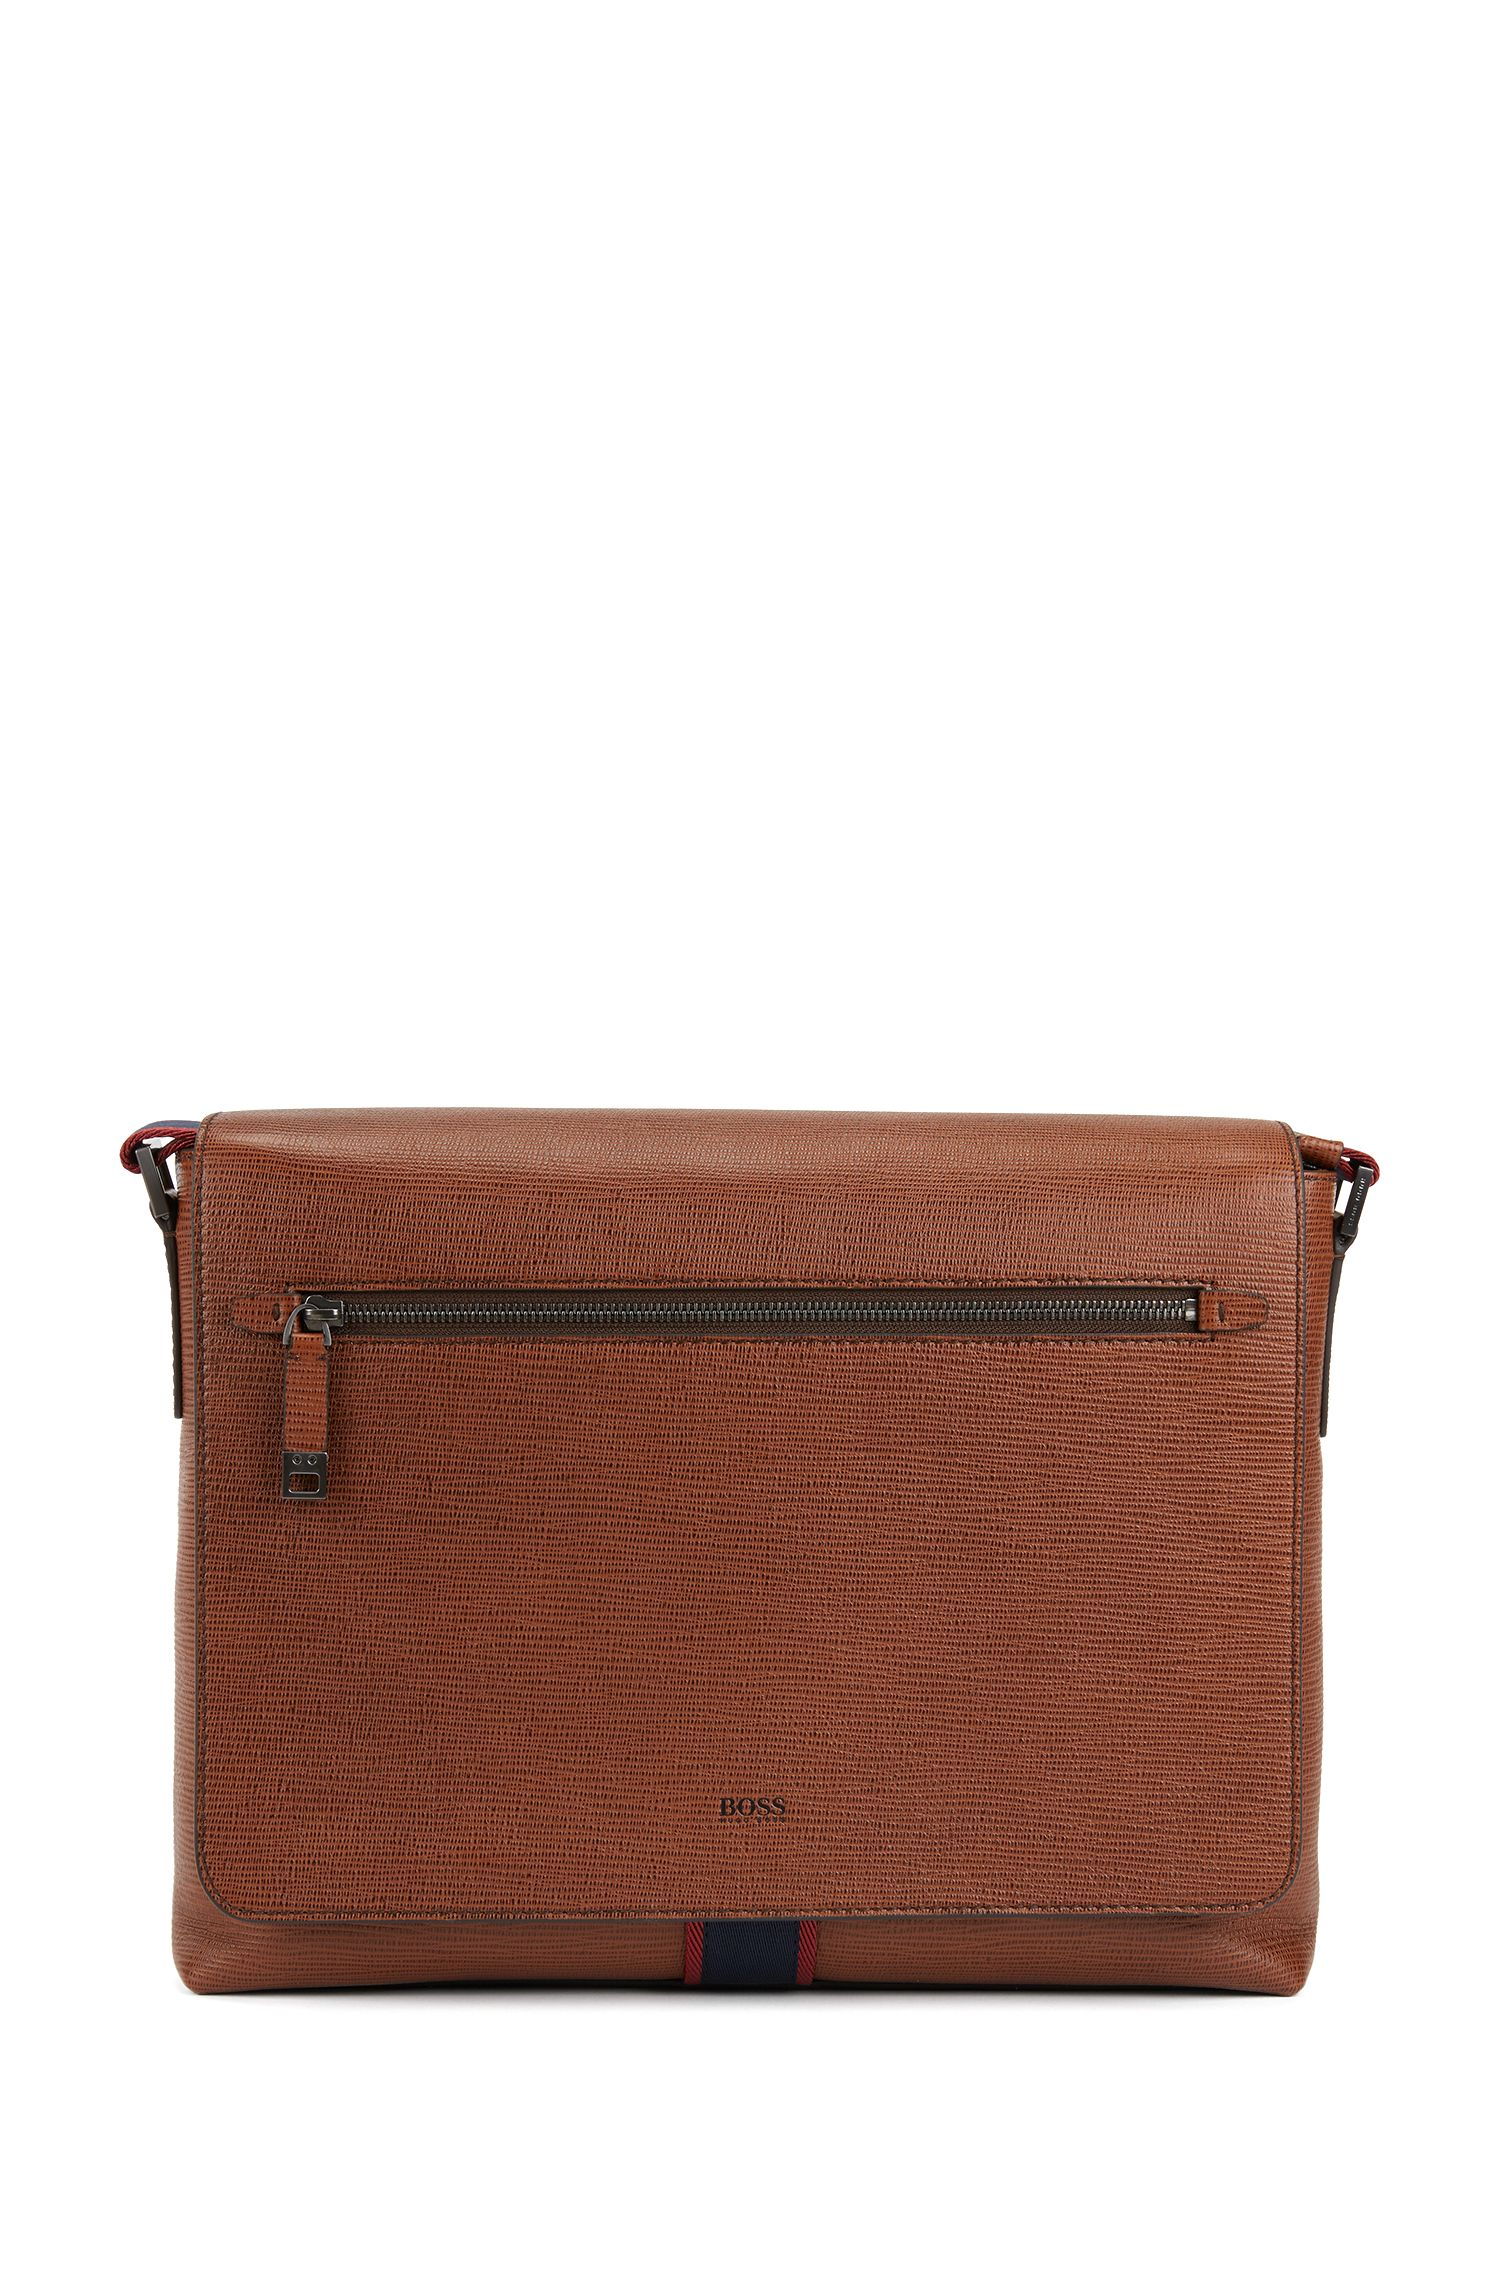 Printed Italian calf-leather messenger bag with webbing detail, Brown